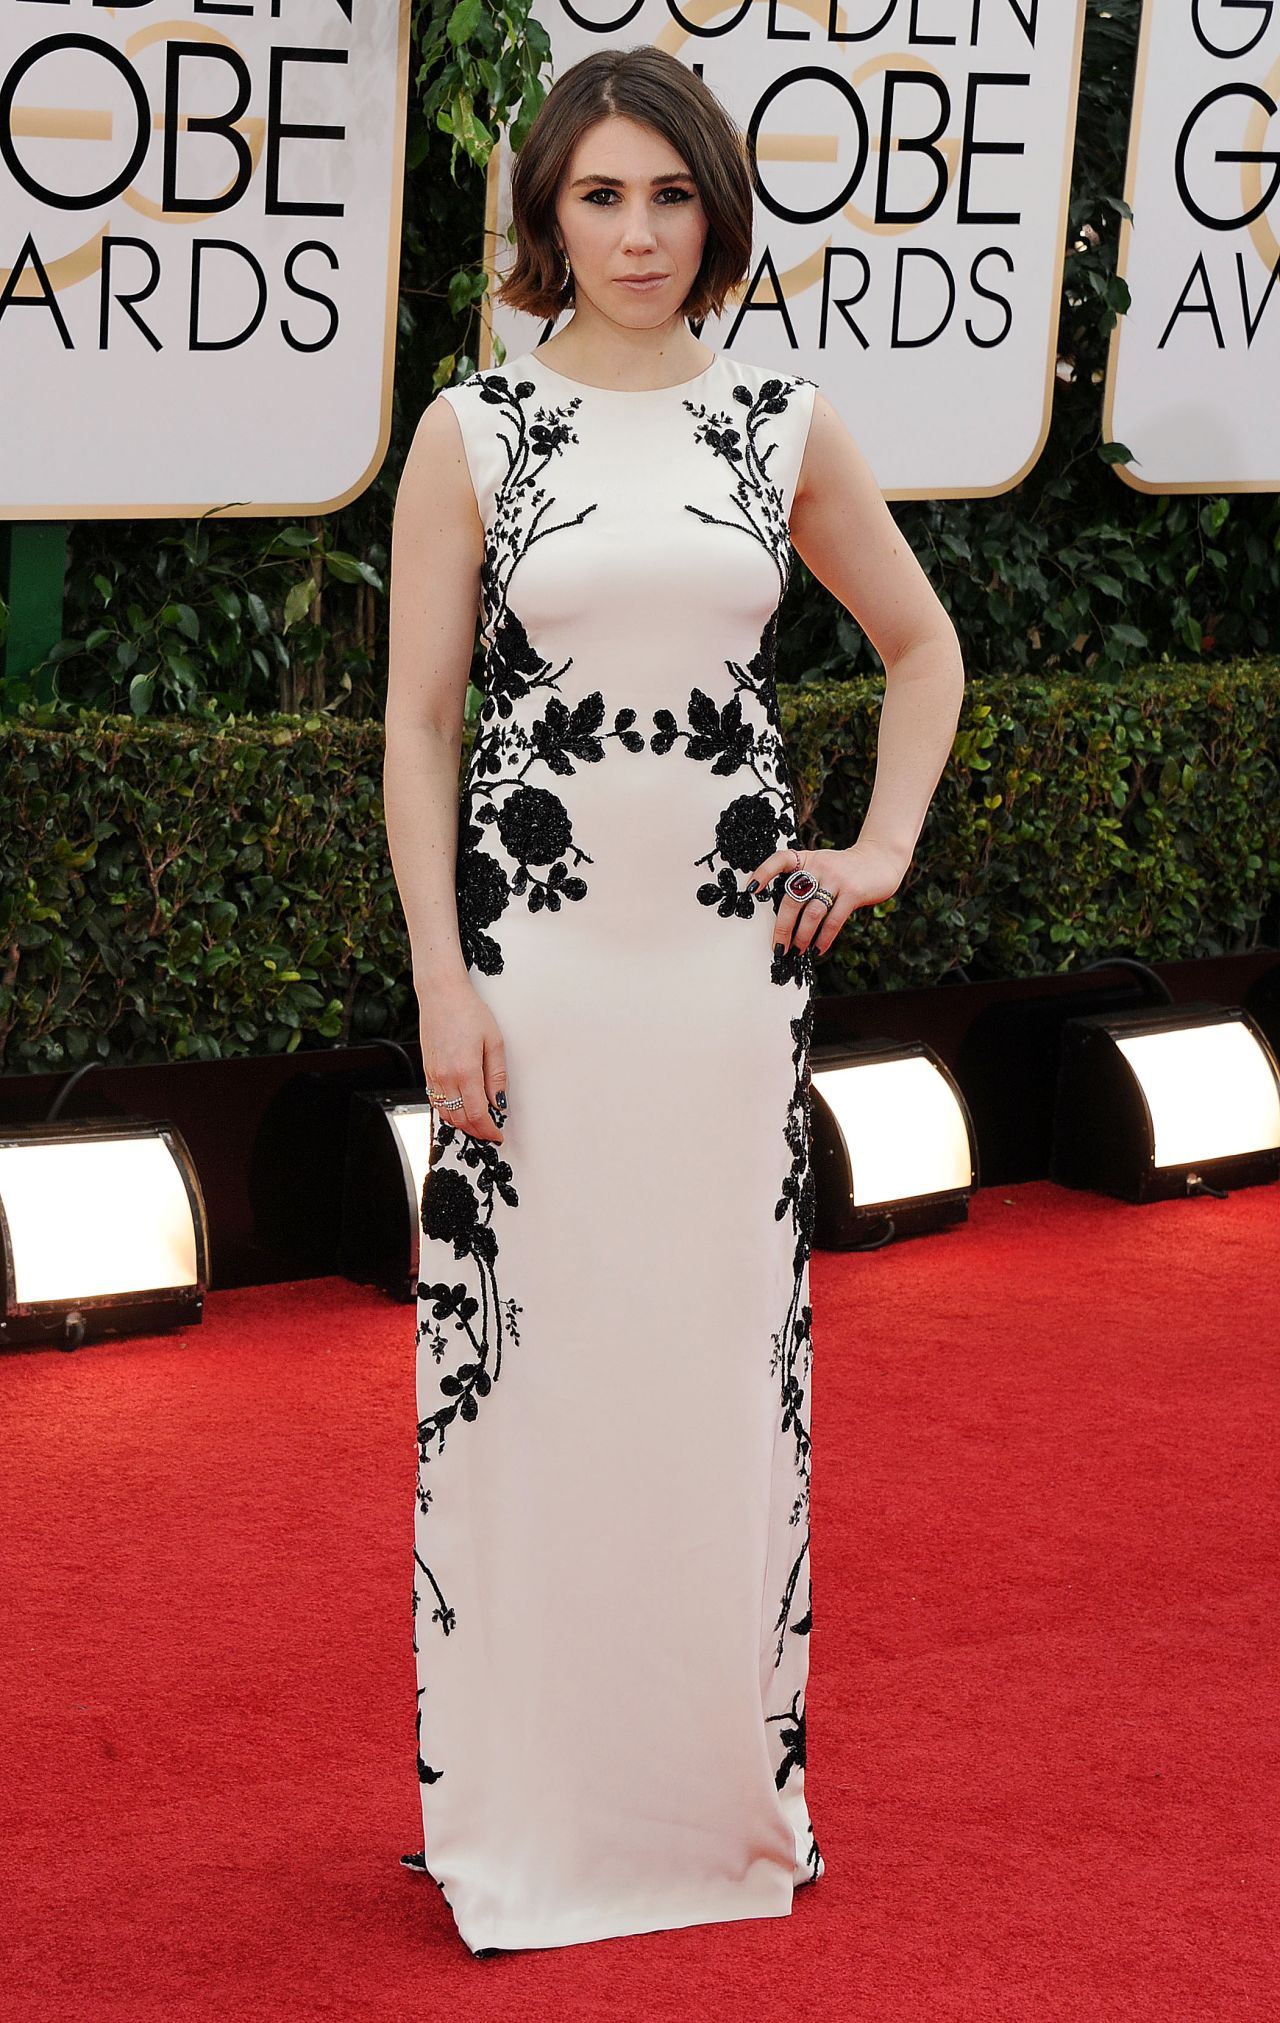 Zosia Mamet - 2014 Golden Globe Awards Red Carpet